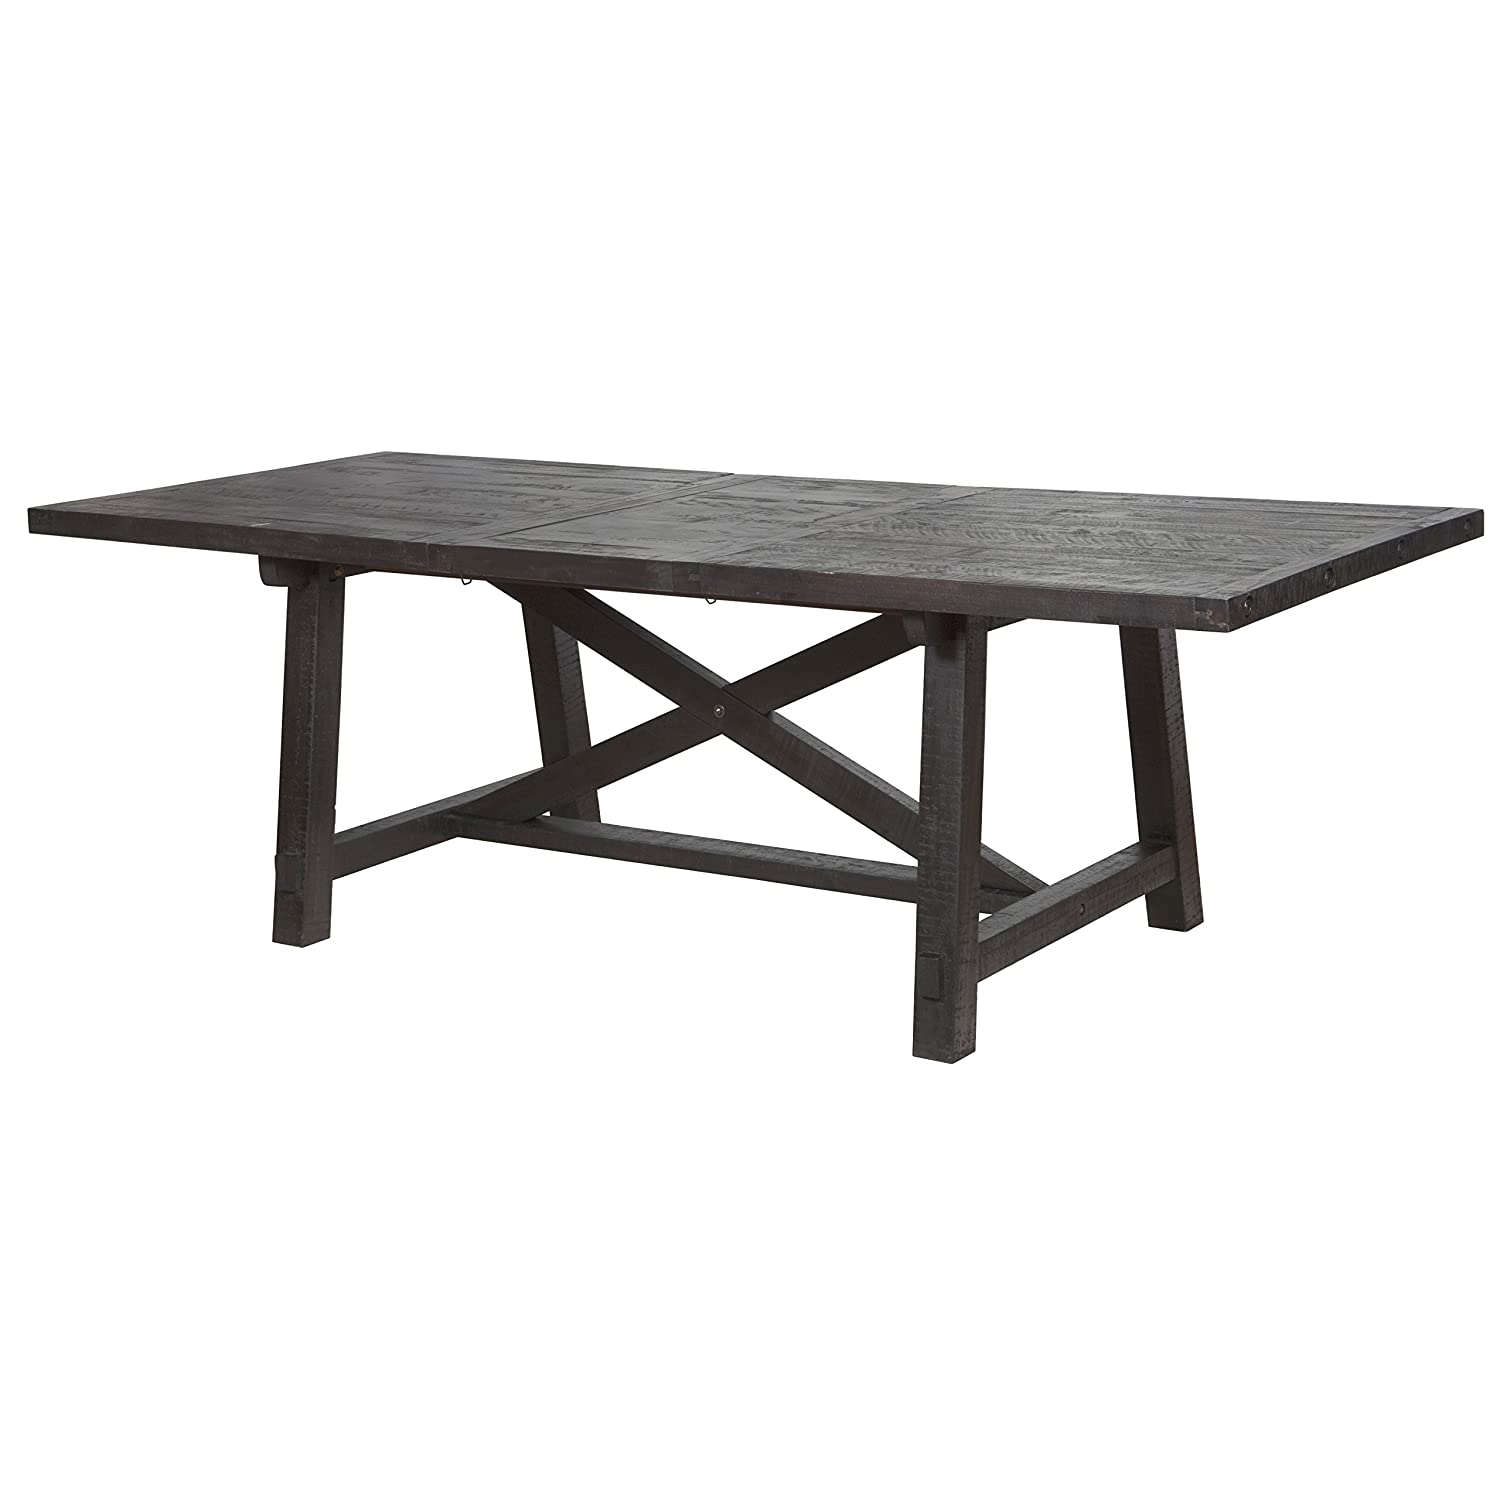 Amazon.com   Modus Furniture 7YC961 Yosemite Solid Wood Rectangular  Extension Table, Black Pine   Chairs